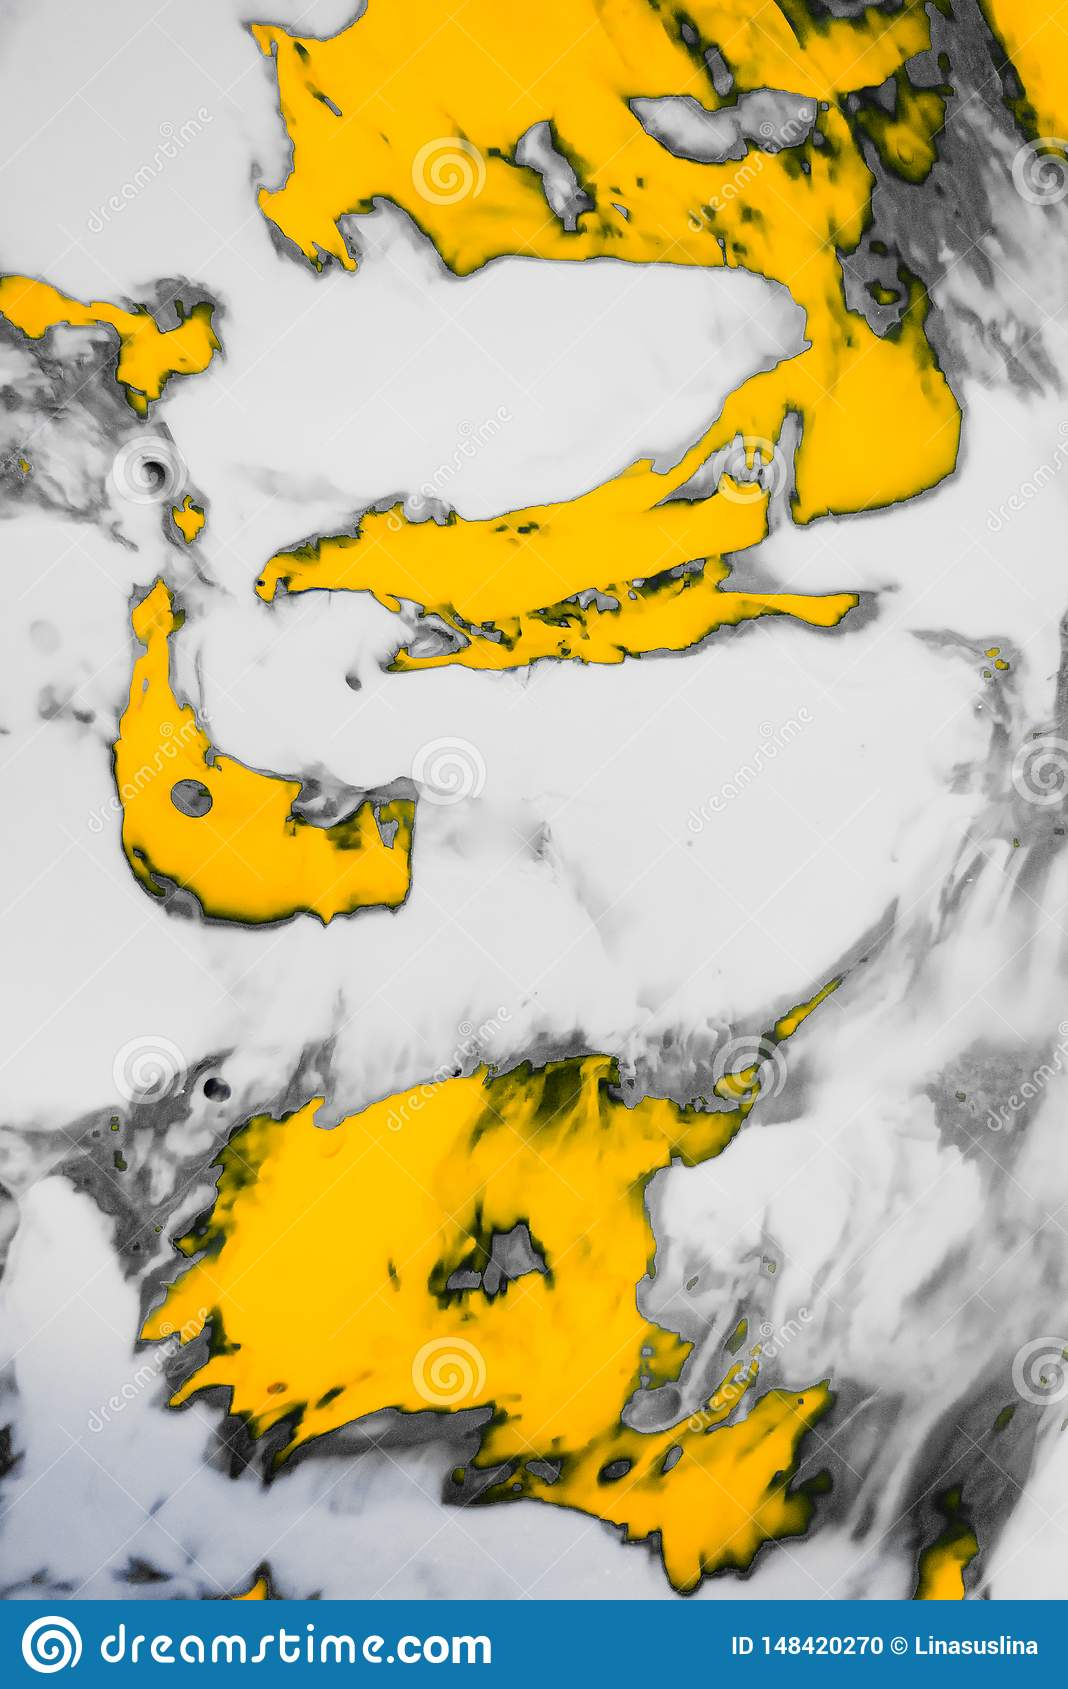 Abstract paint splashes background. White grey and orange liquid mixing psychedelic backdrop